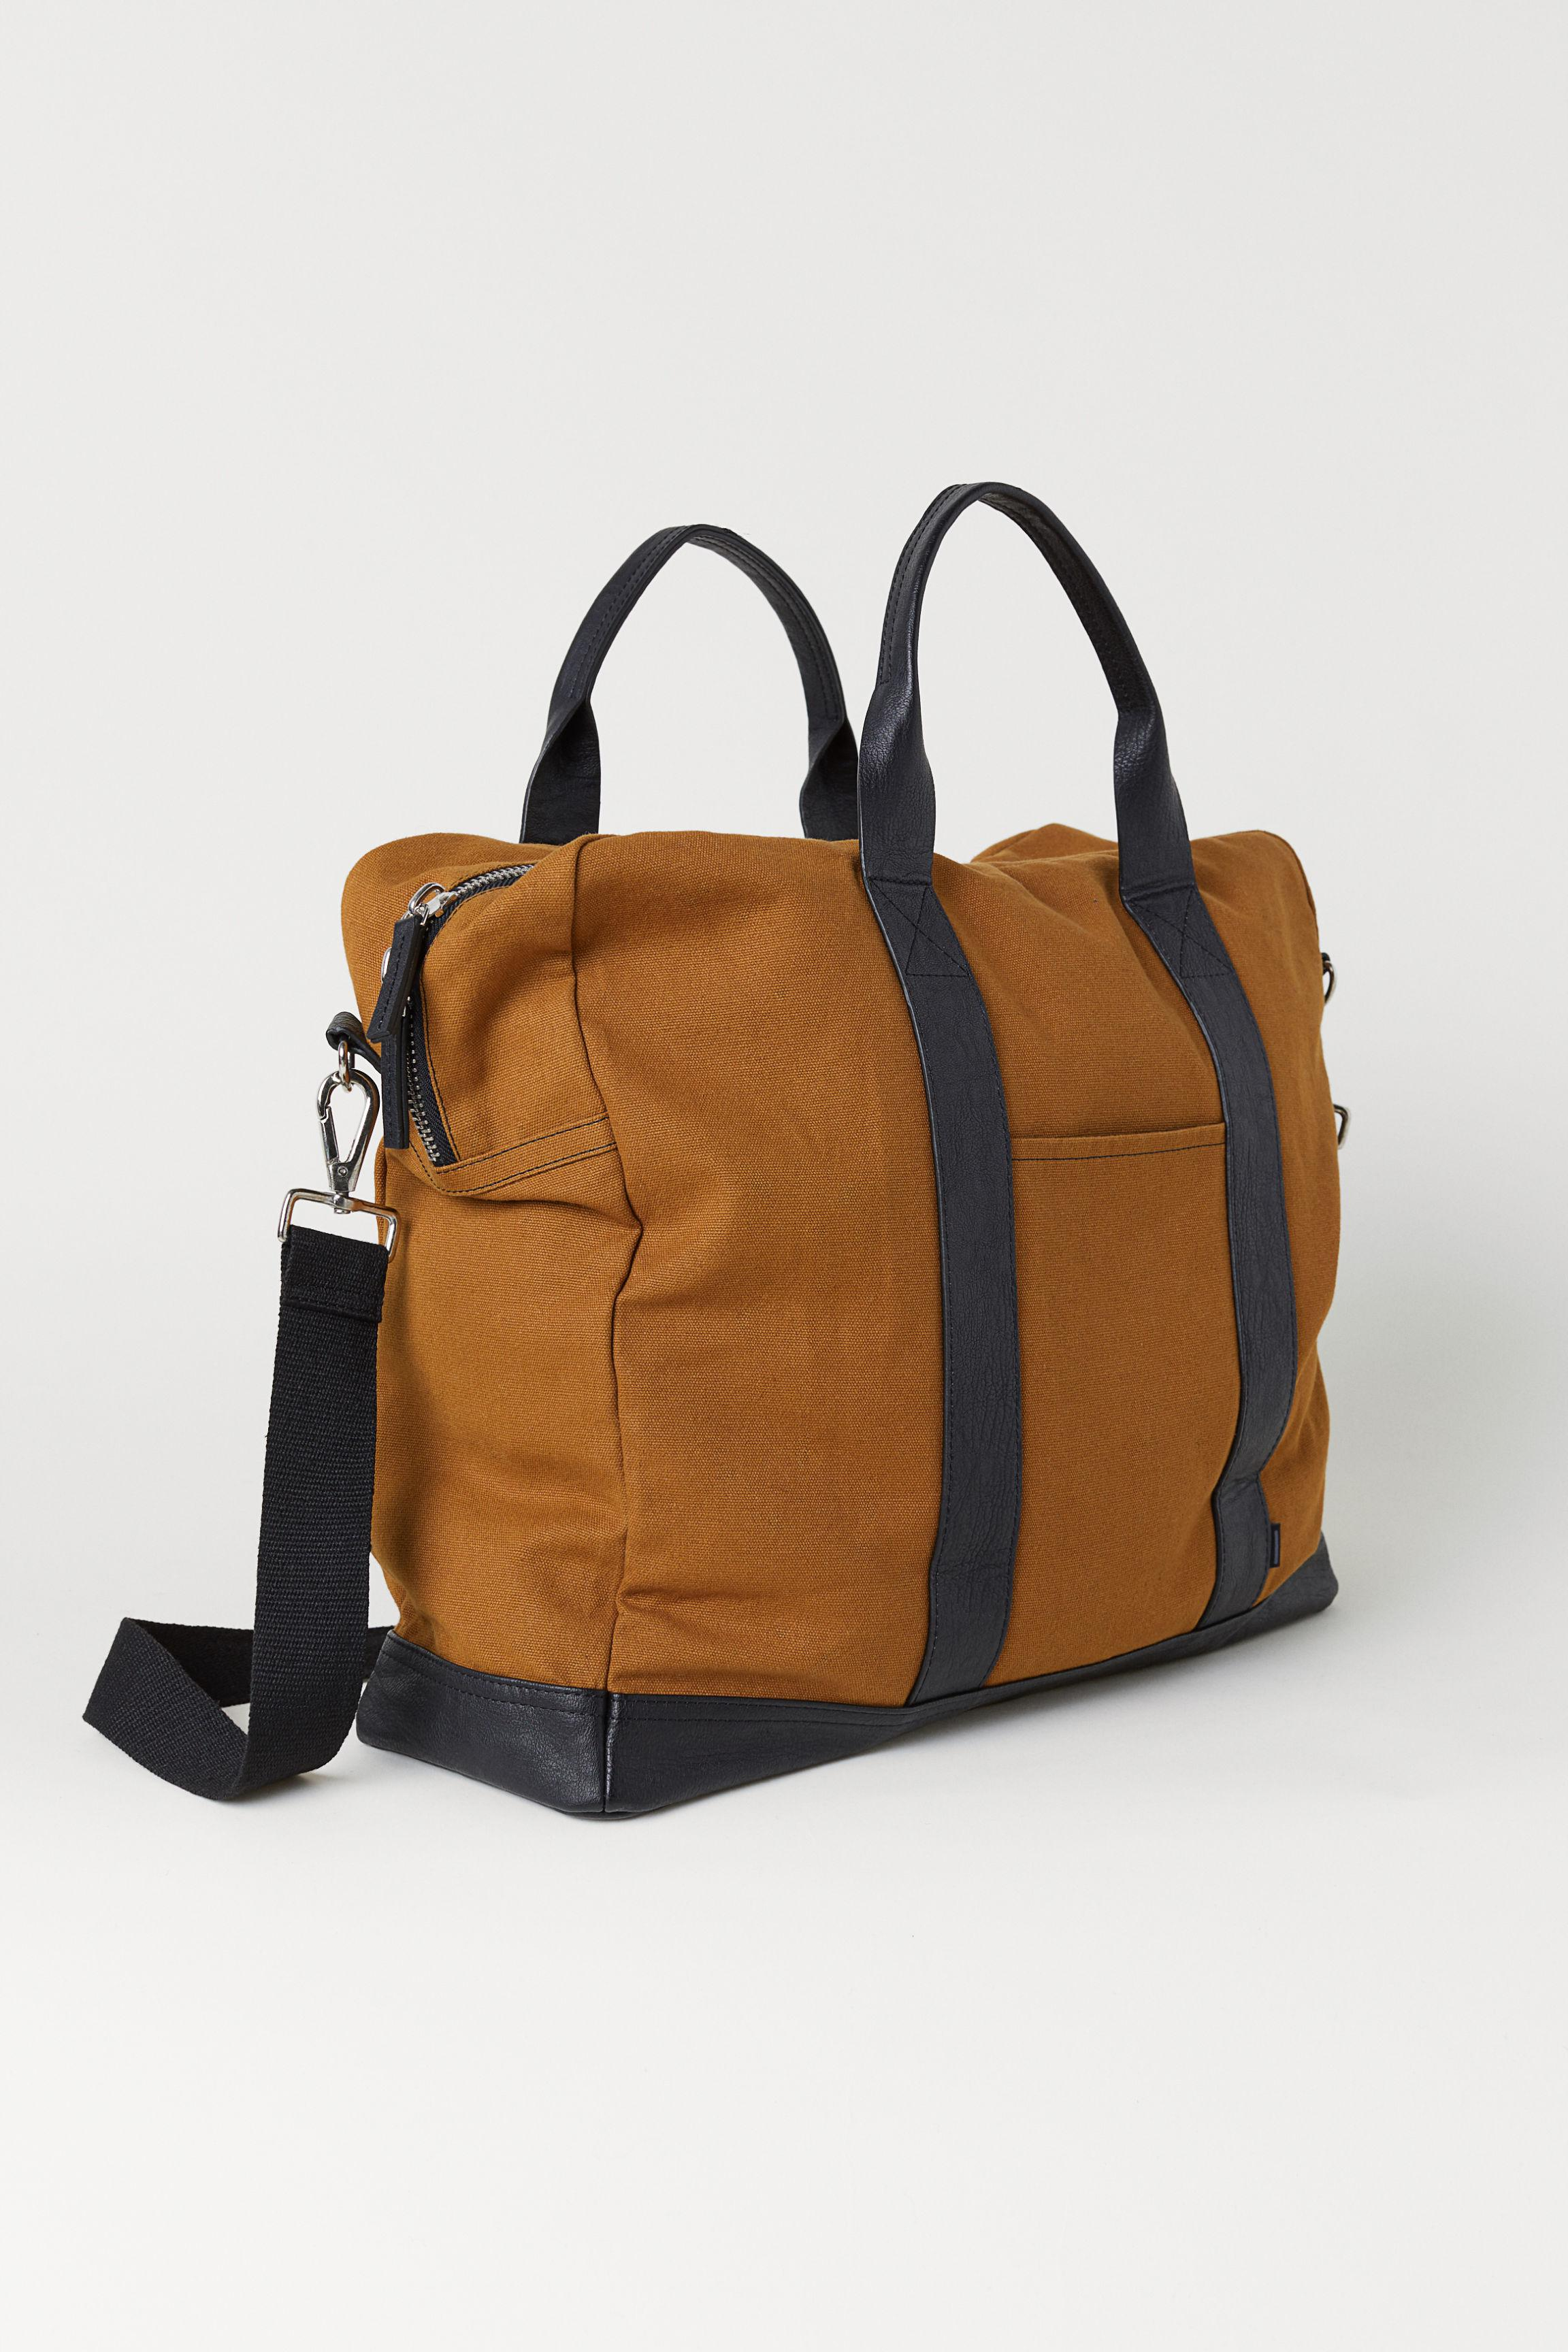 d9deccce02 H M Canvas Weekend Bag in Brown for Men - Lyst